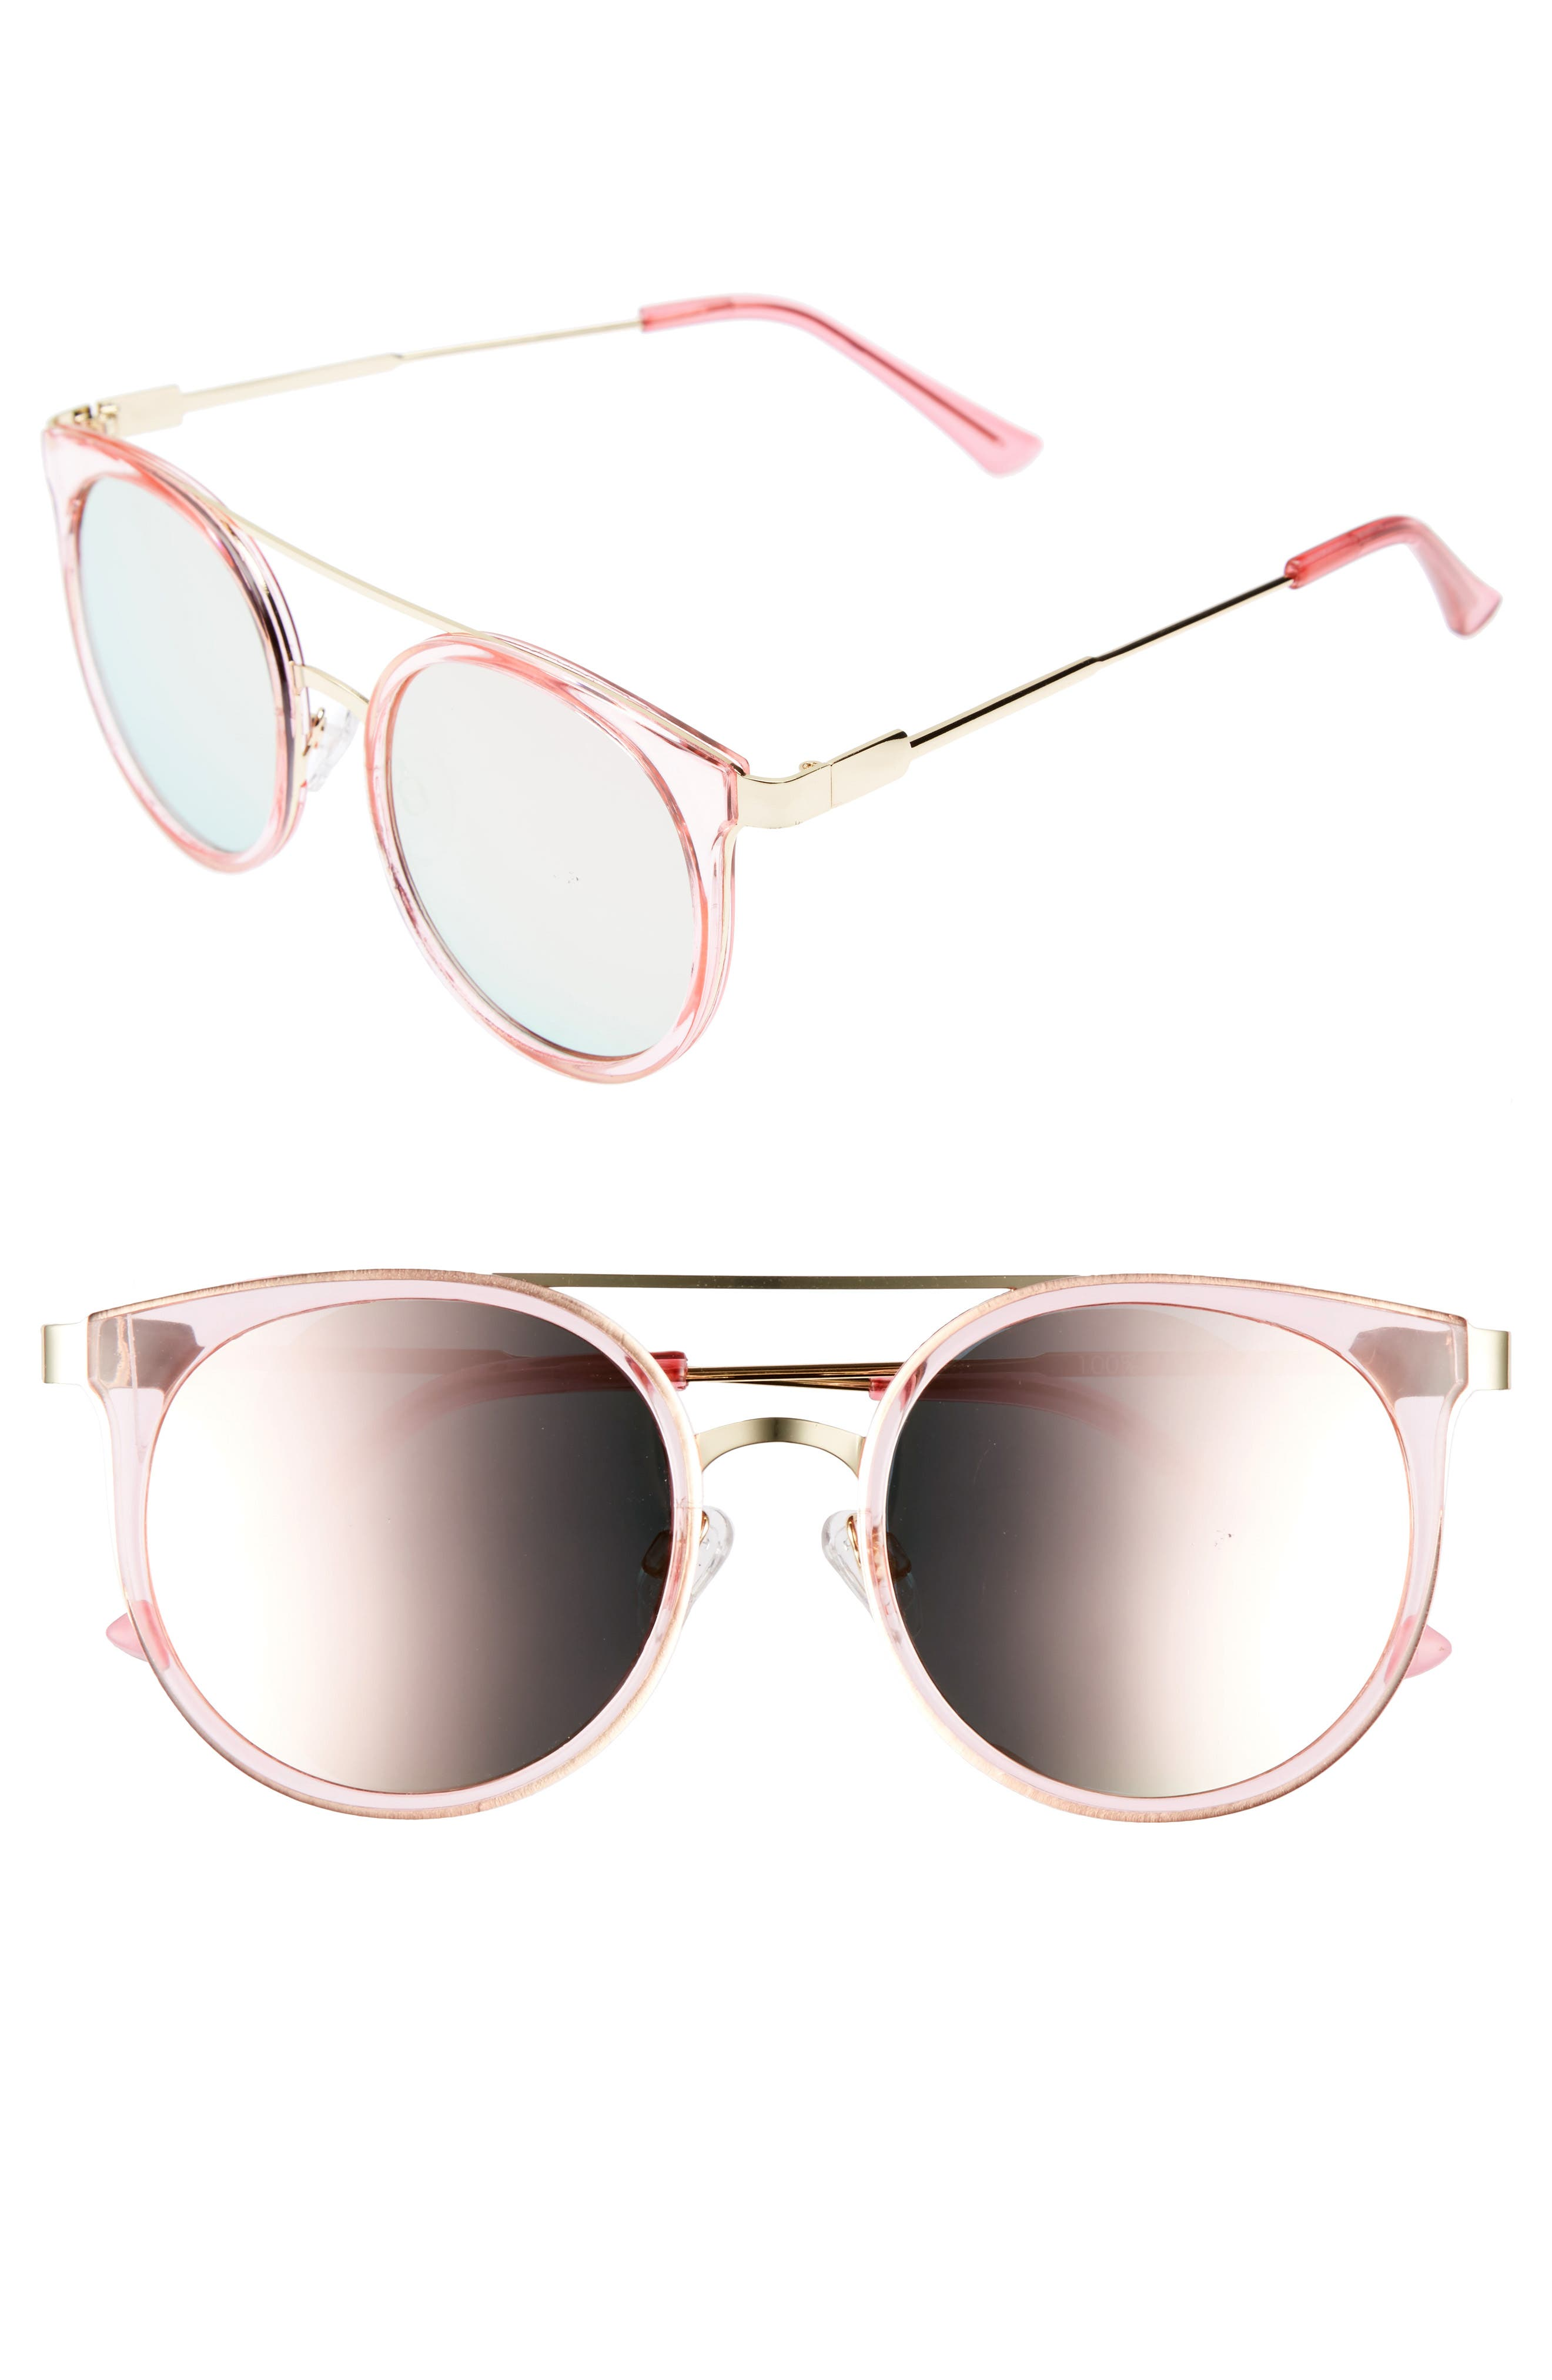 52mm Mirror Lens Round Sunglasses,                             Main thumbnail 1, color,                             Gold/ Pink